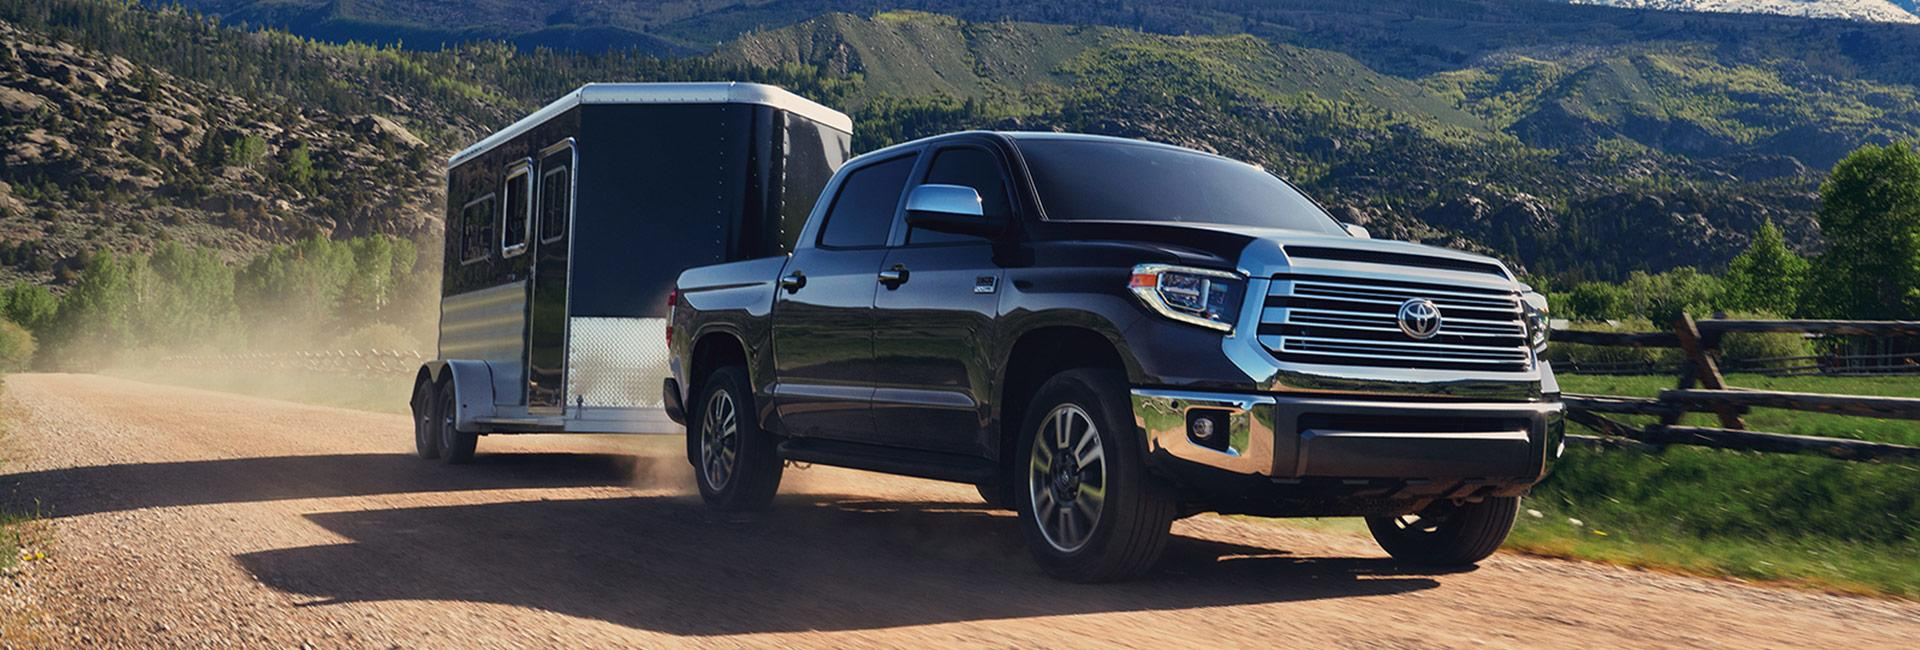 Exterior image of the 2020 Toyota Tundra for sale at Spitzer Toyota.